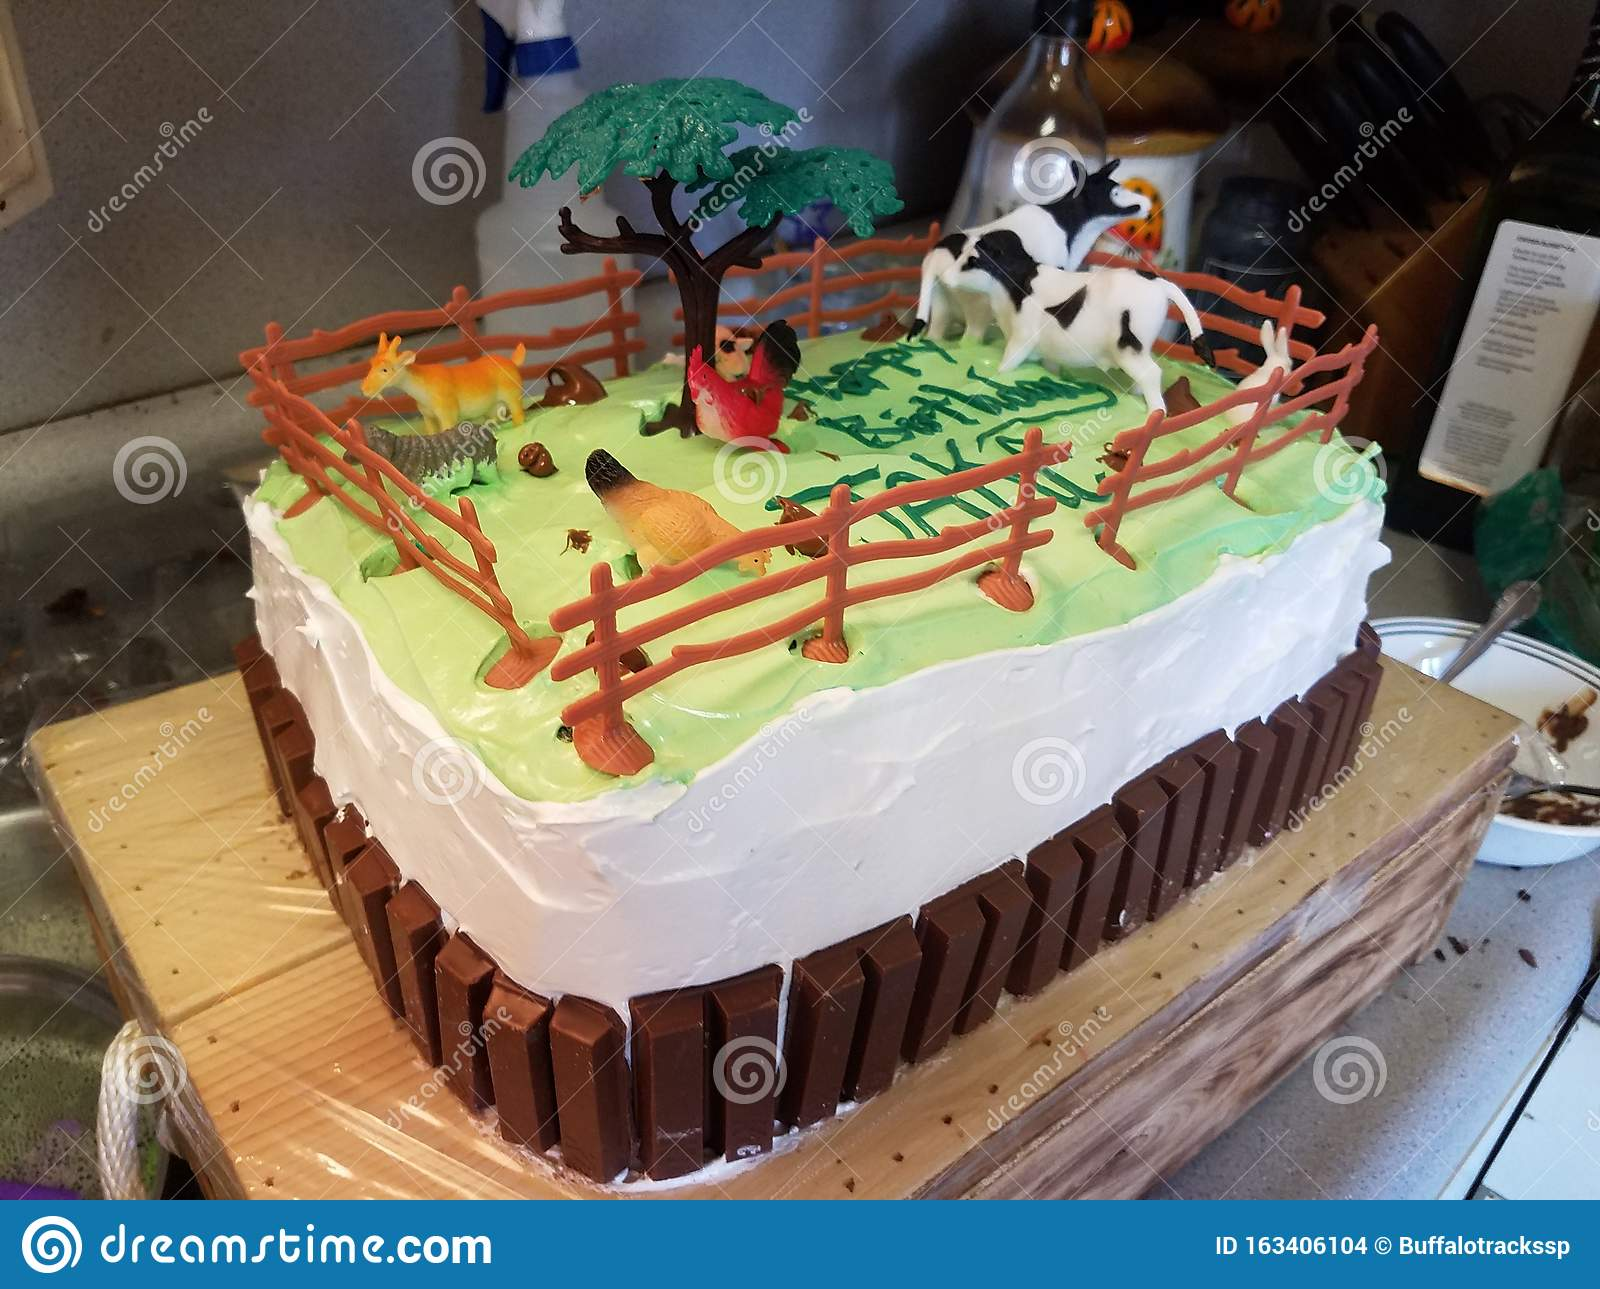 Tremendous Birthday Cake With A Farm Animal Theme Stock Photo Image Of Cake Birthday Cards Printable Opercafe Filternl